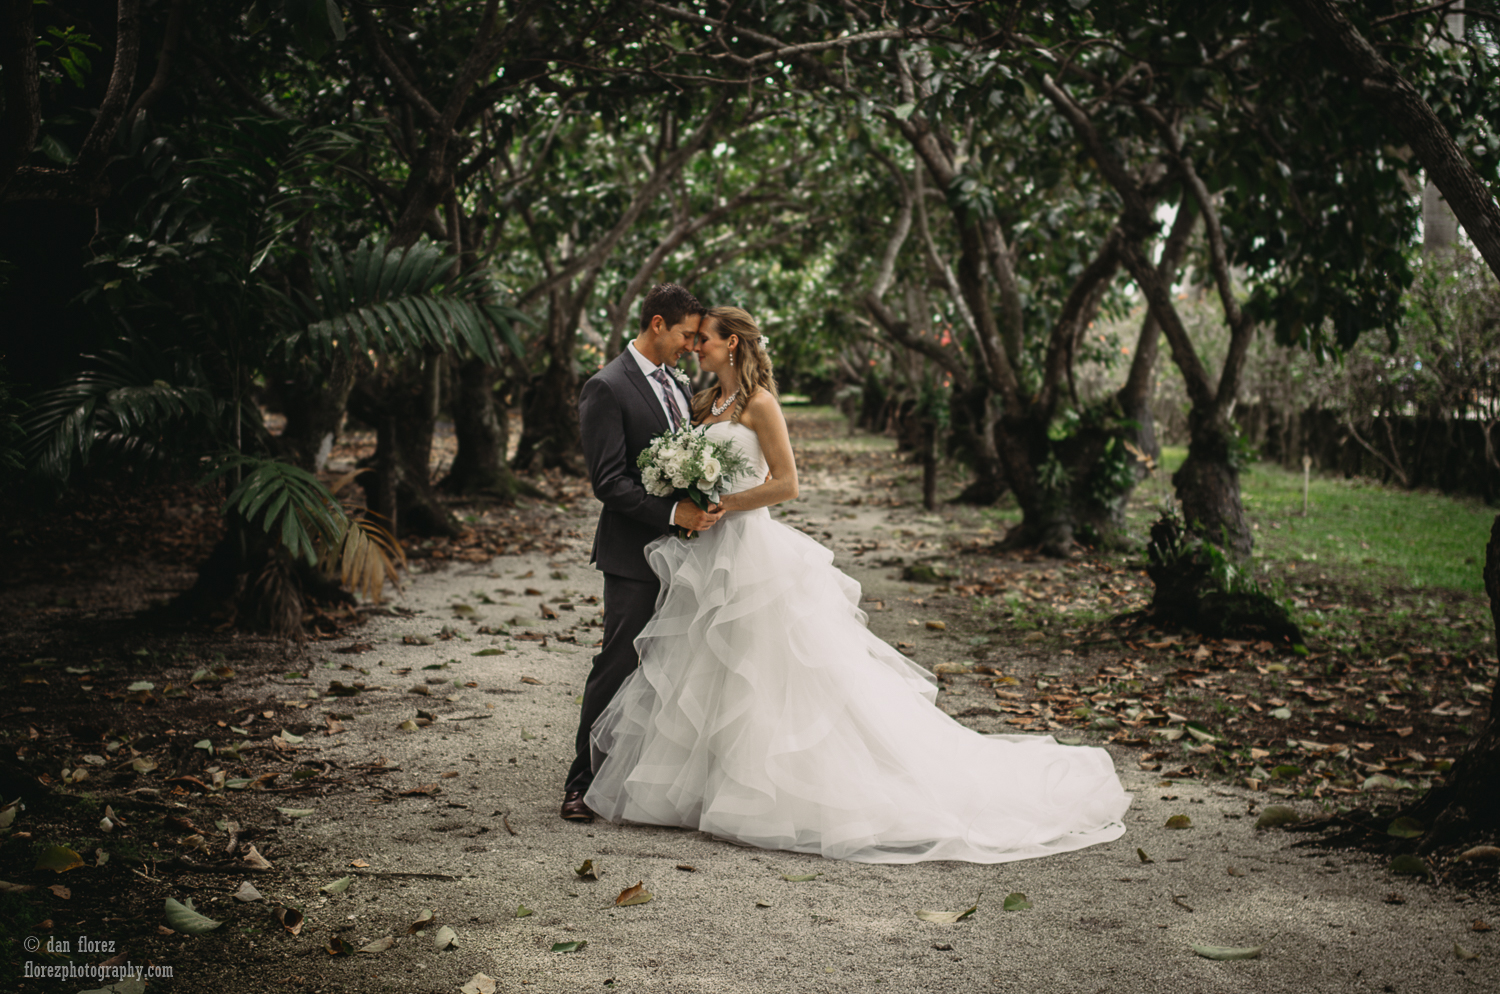 Wedding @ The Old Grove, in Homestead Florida.